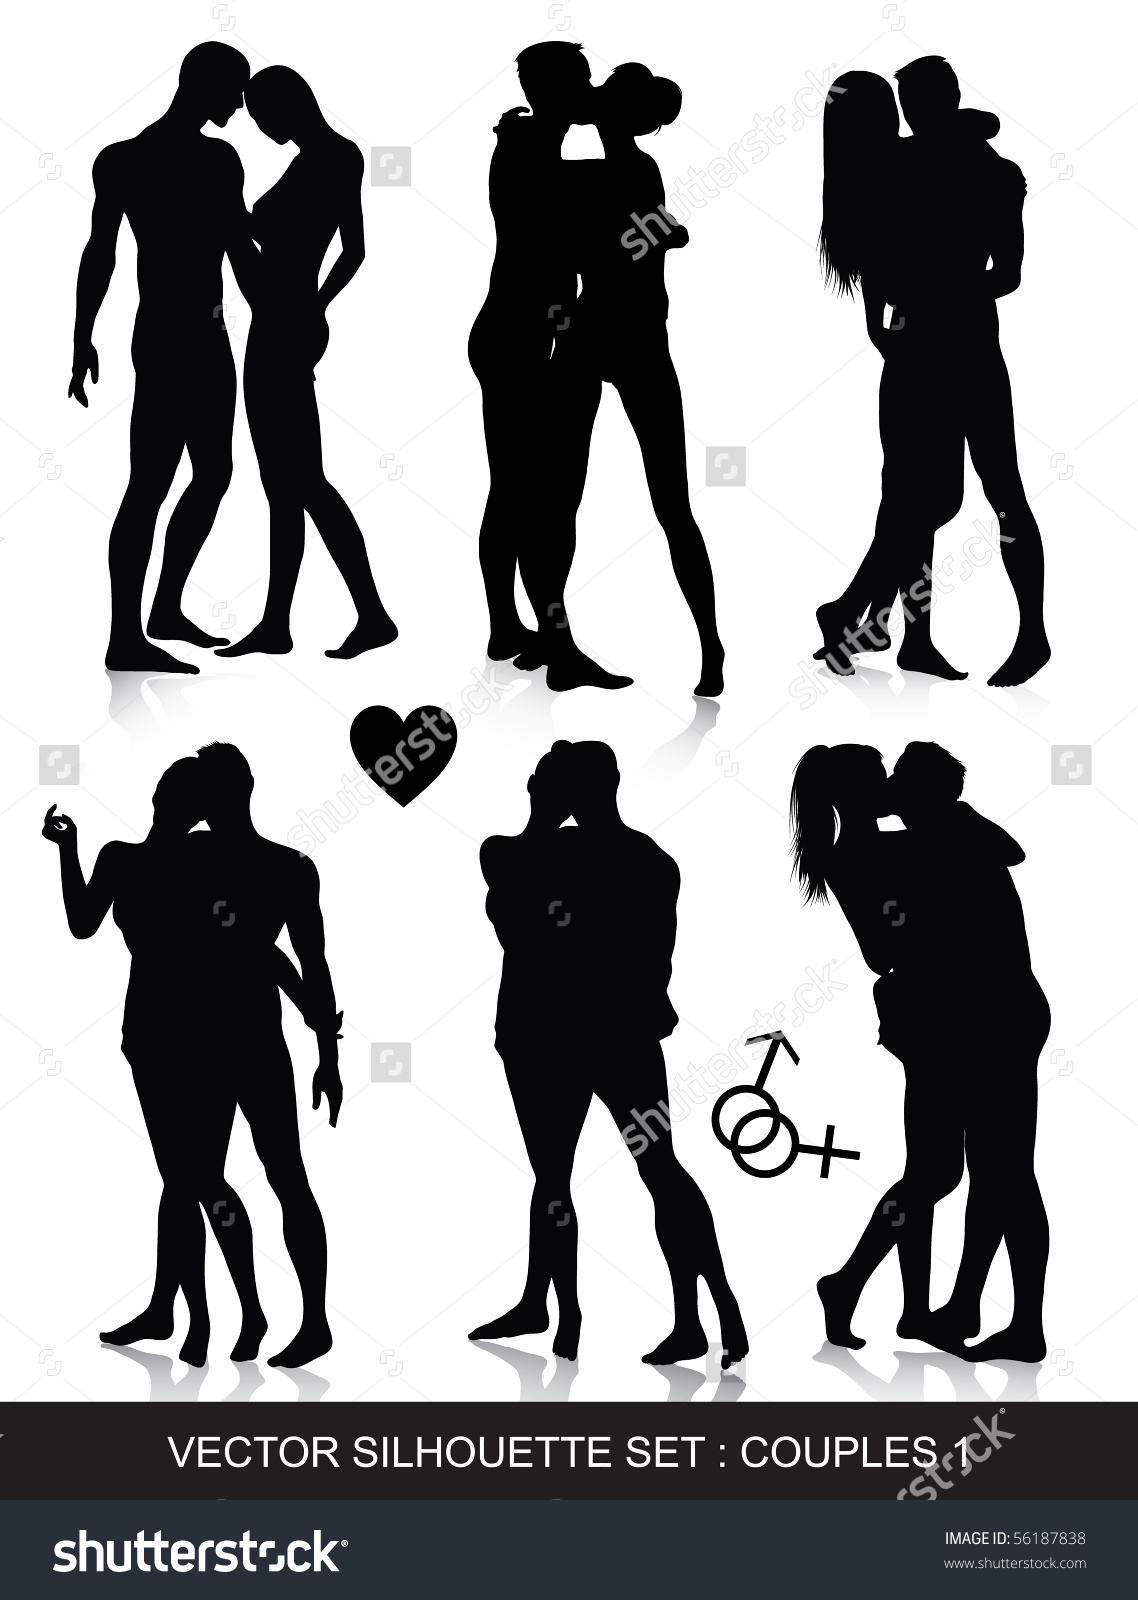 Intimate couple silhouette clipart.